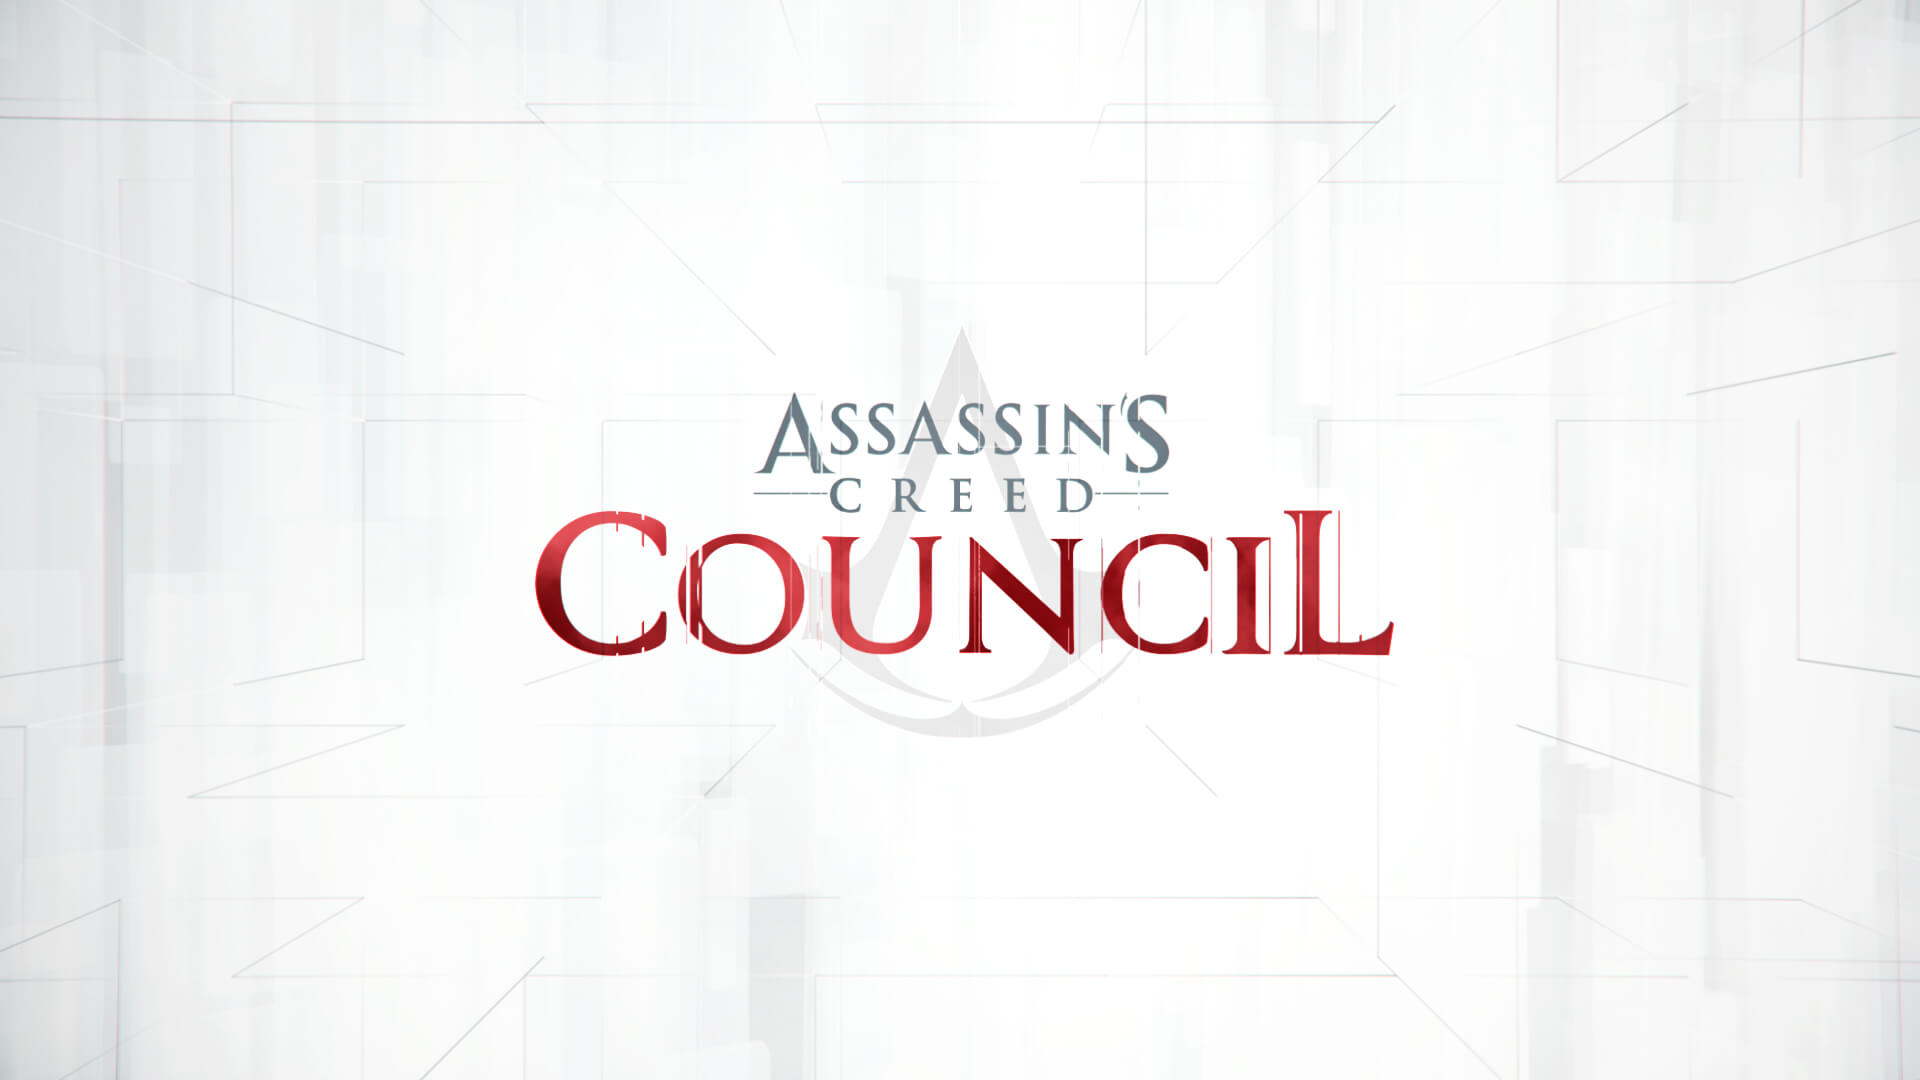 Stillframes from our Assassin's Creed Motion Design animation